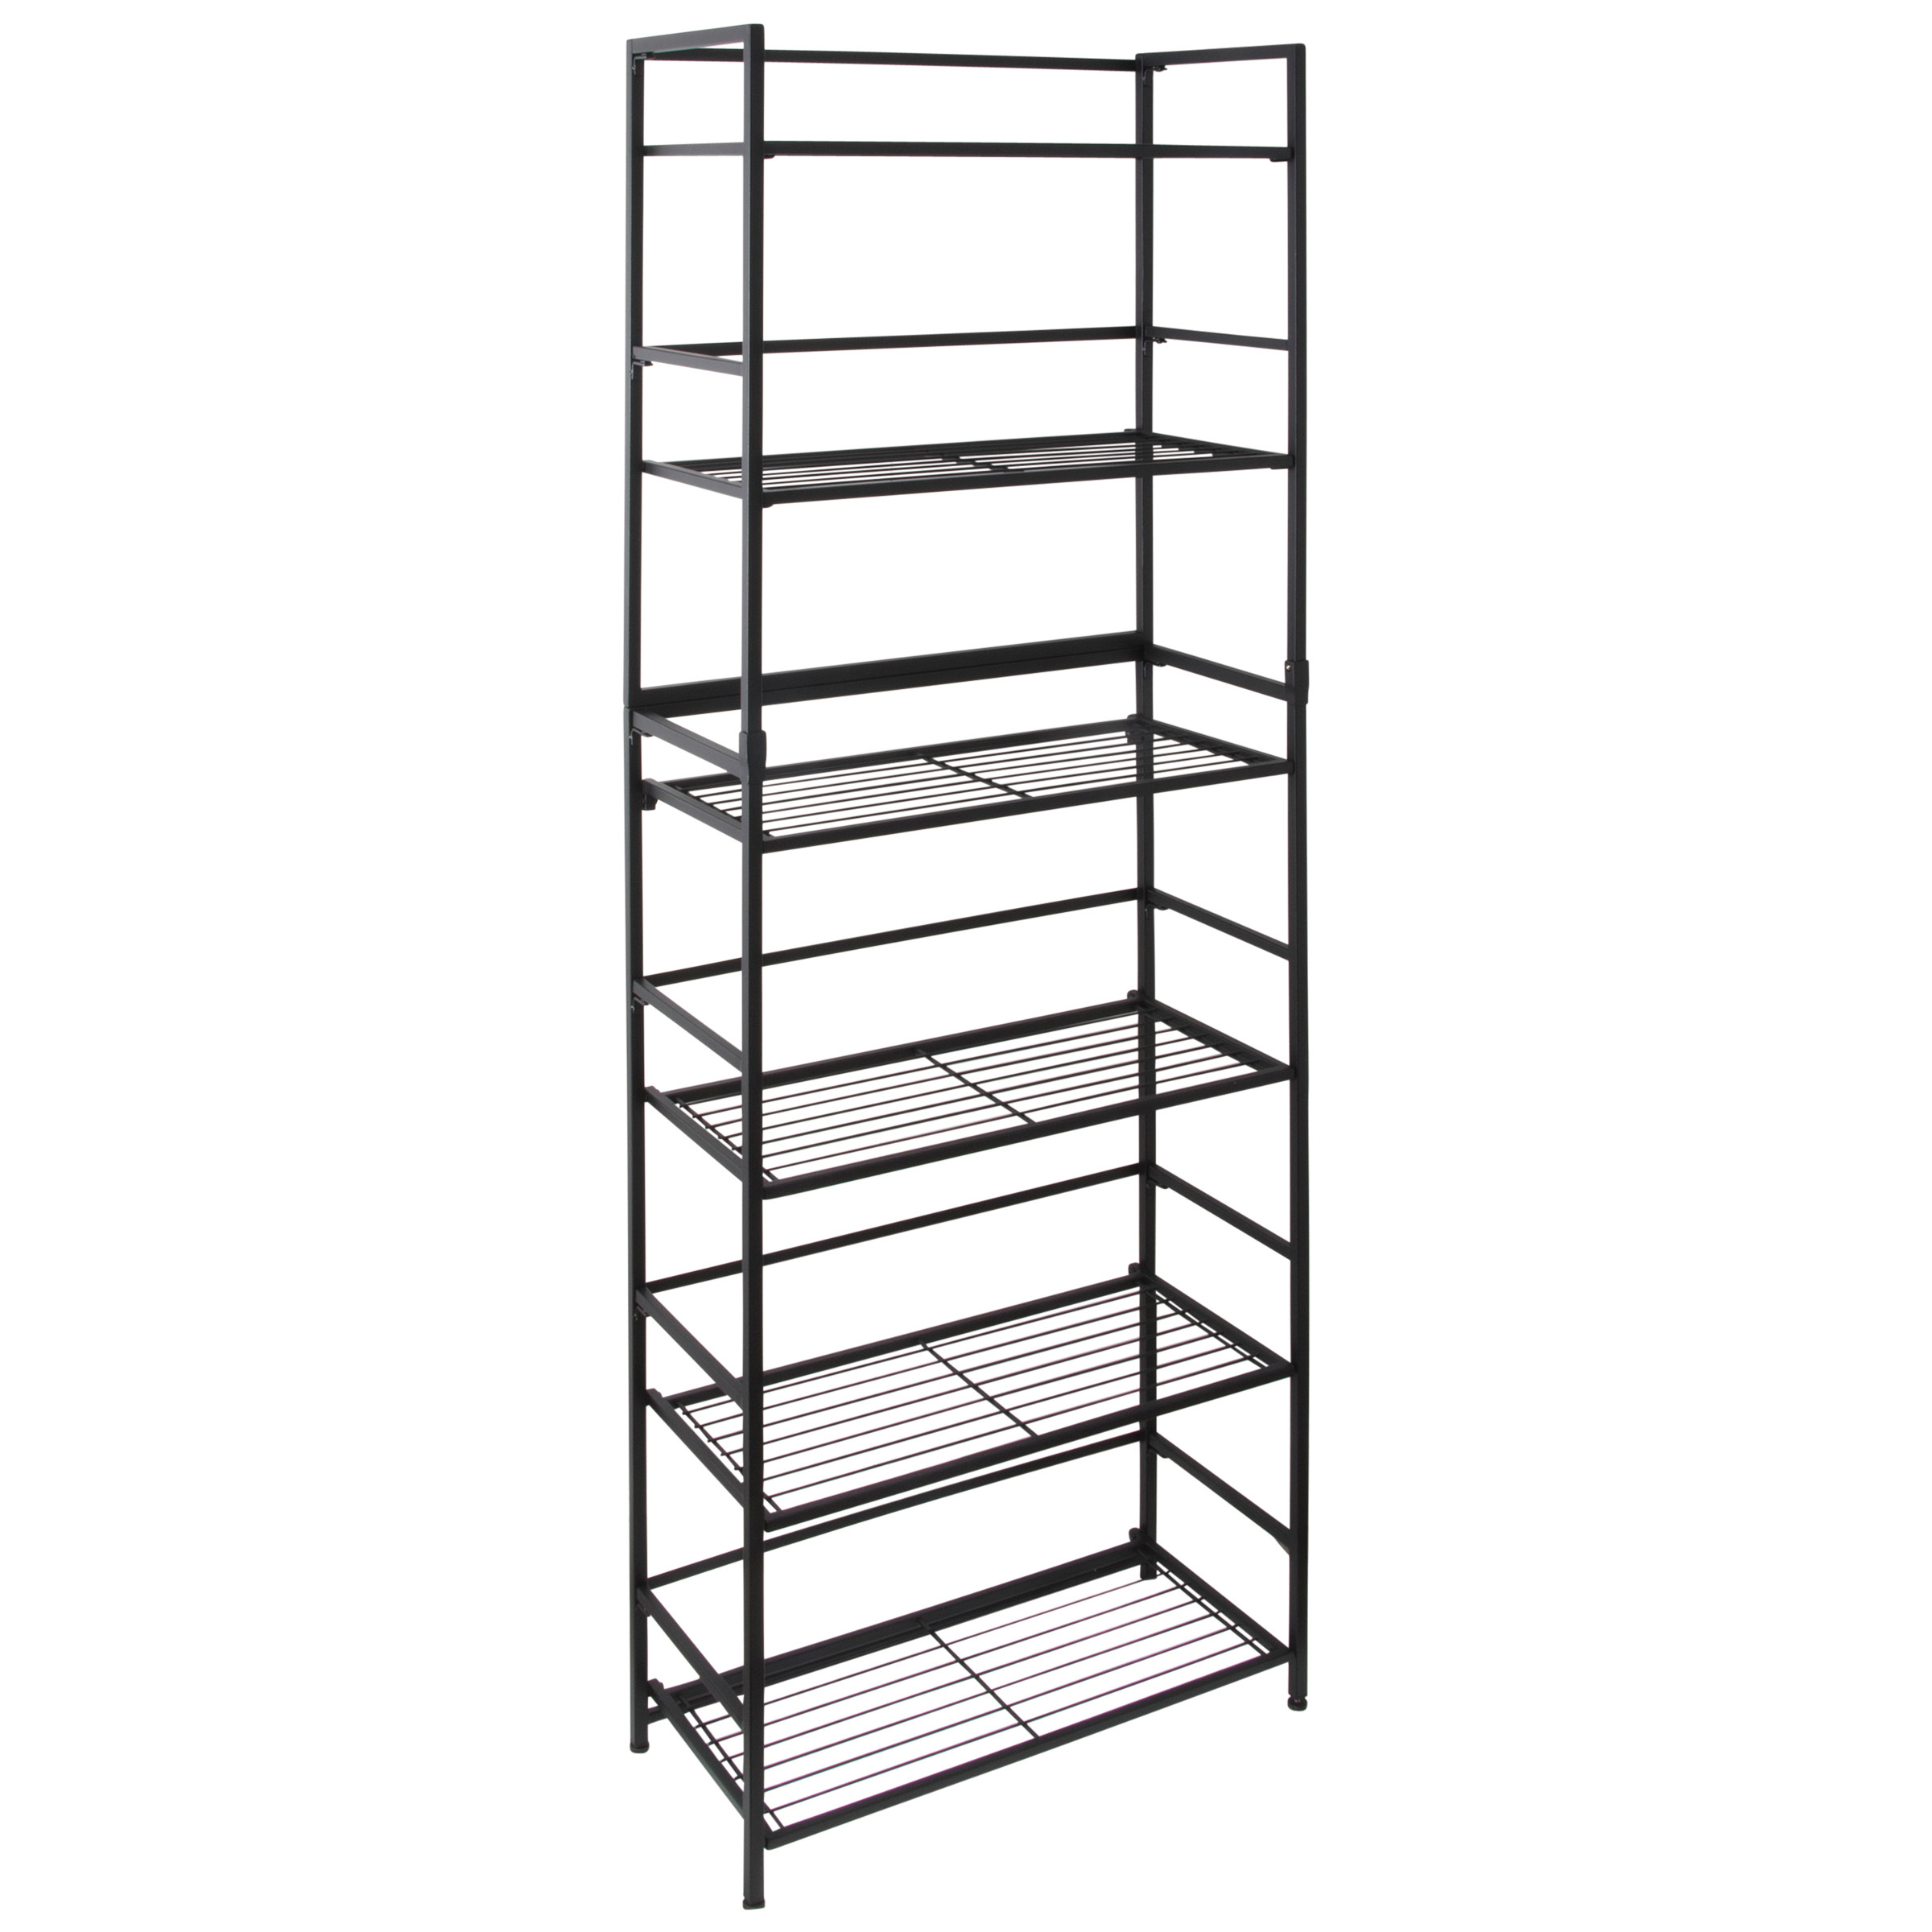 flipshelf folding metal shelf no assembly bookcase style 6 shelves wide walmart com